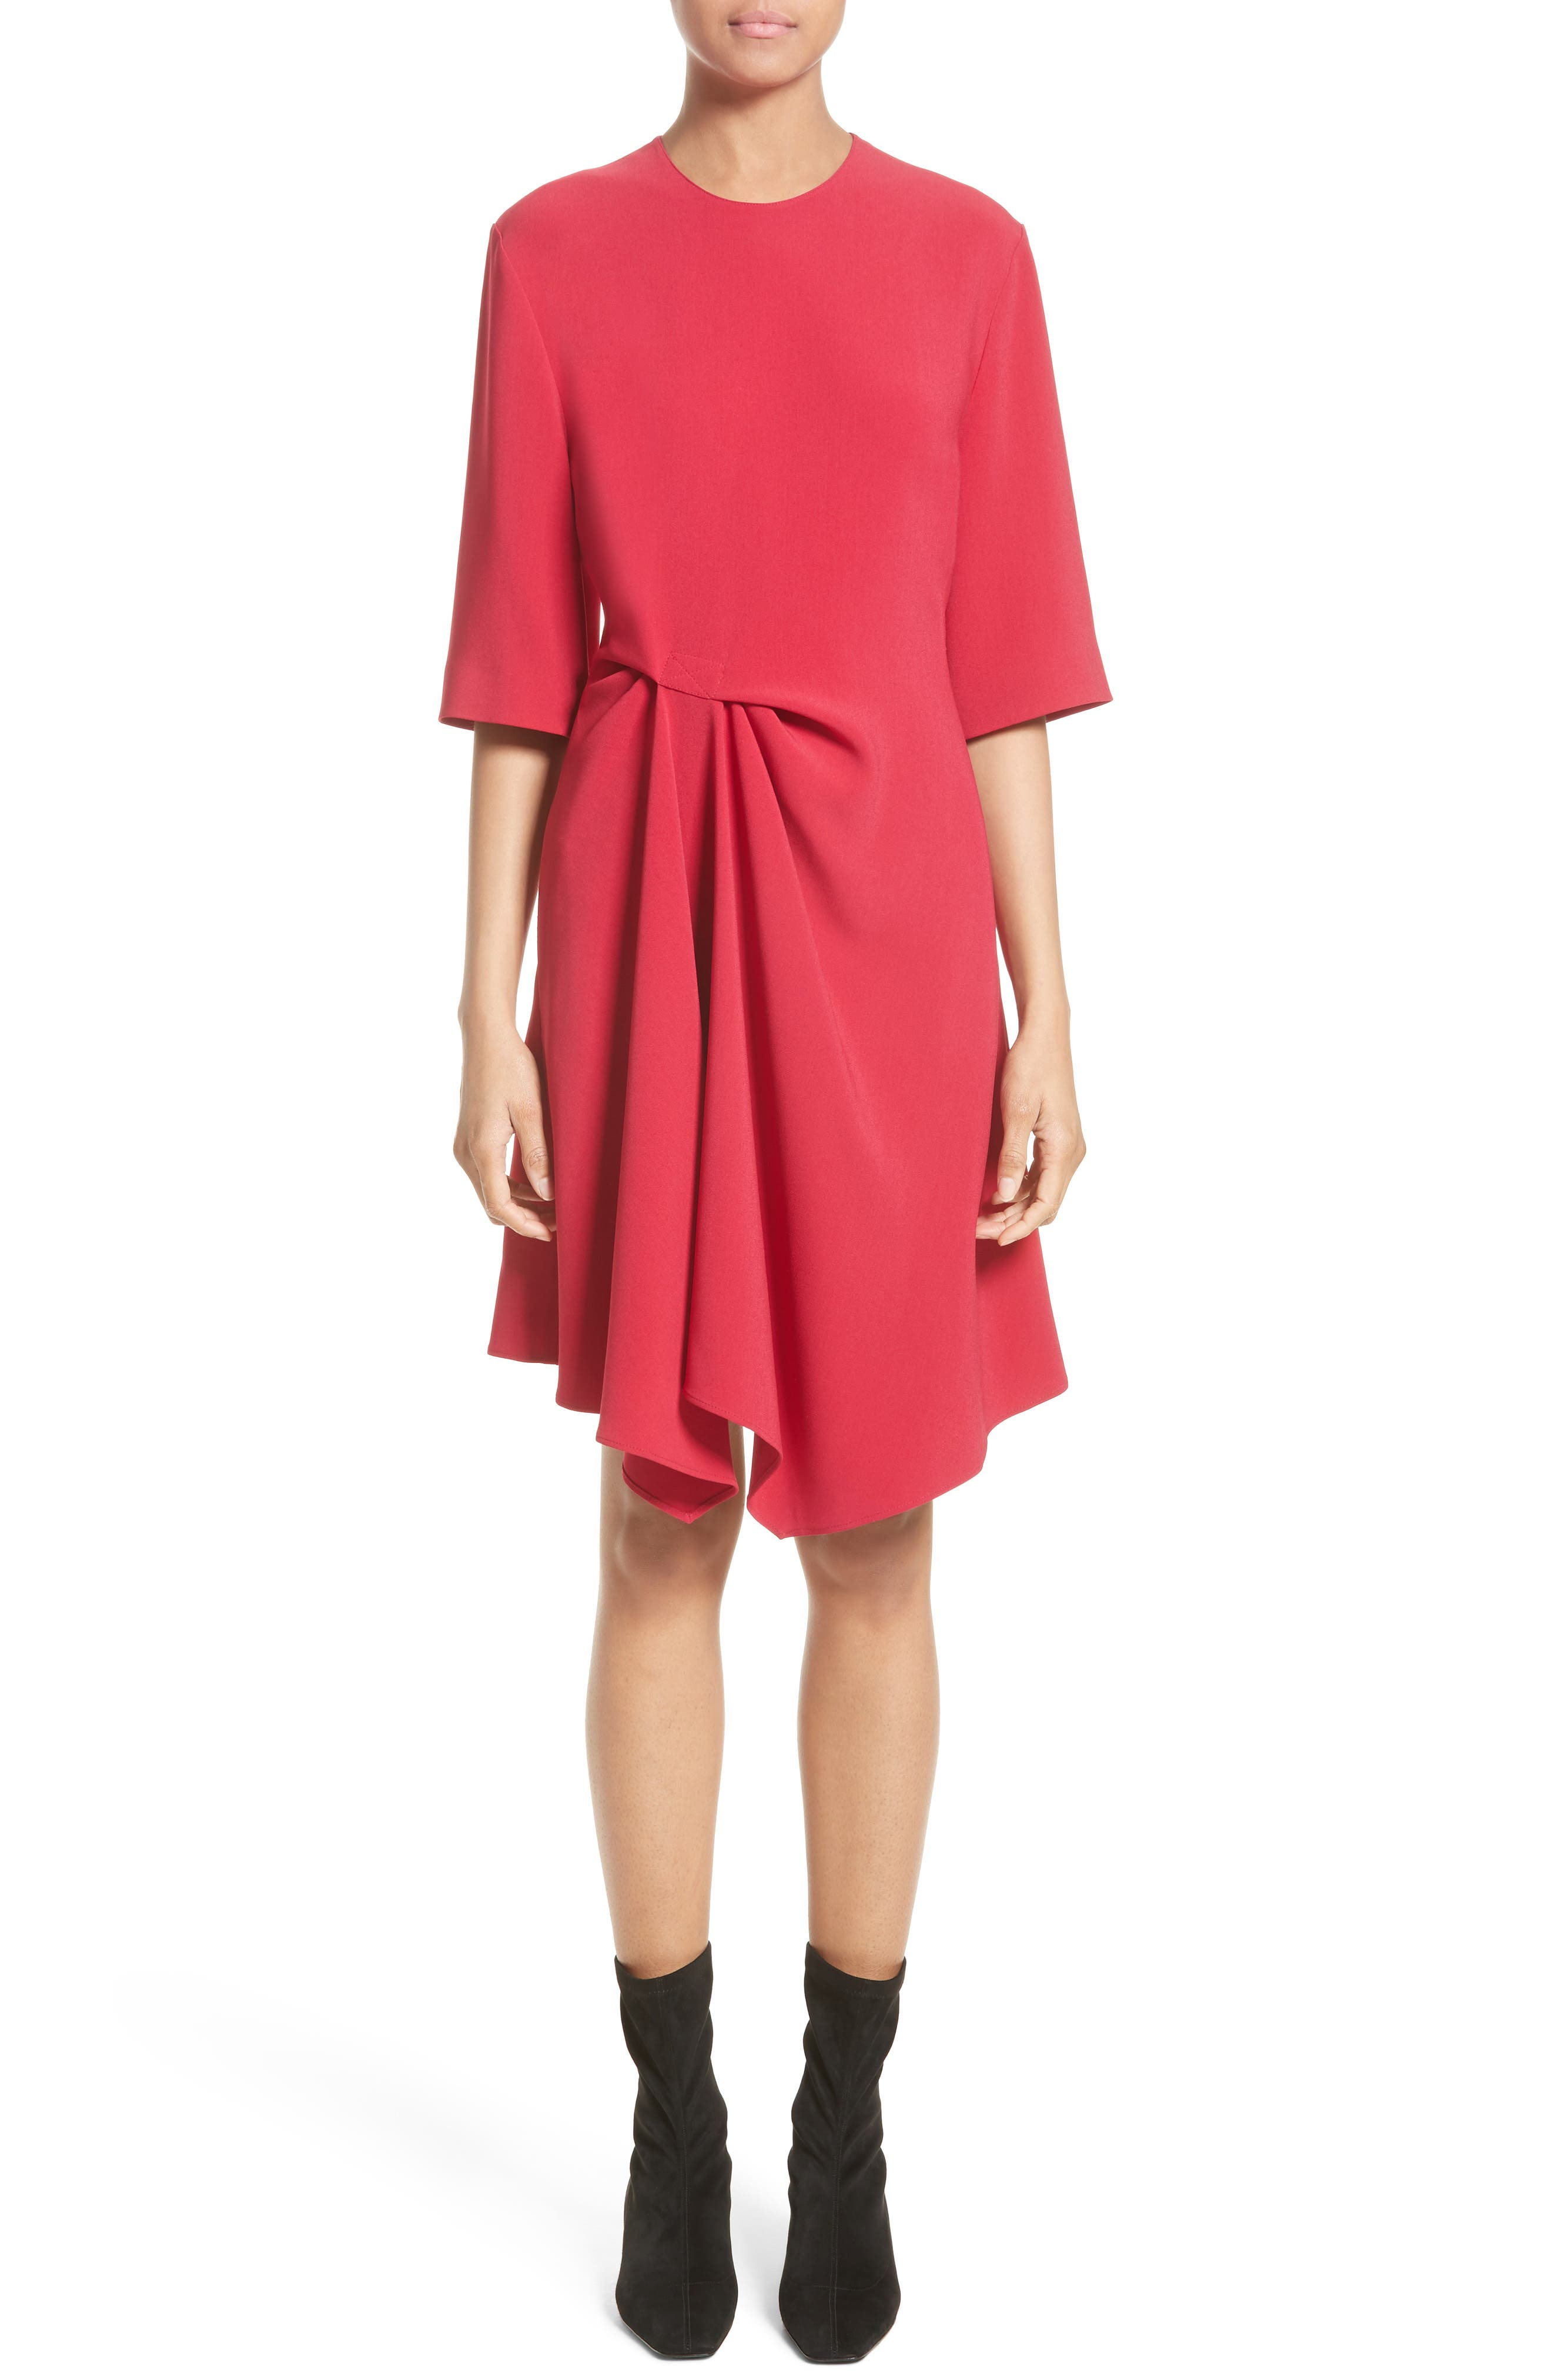 Stella McCartney Draped Stretch Cady Dress